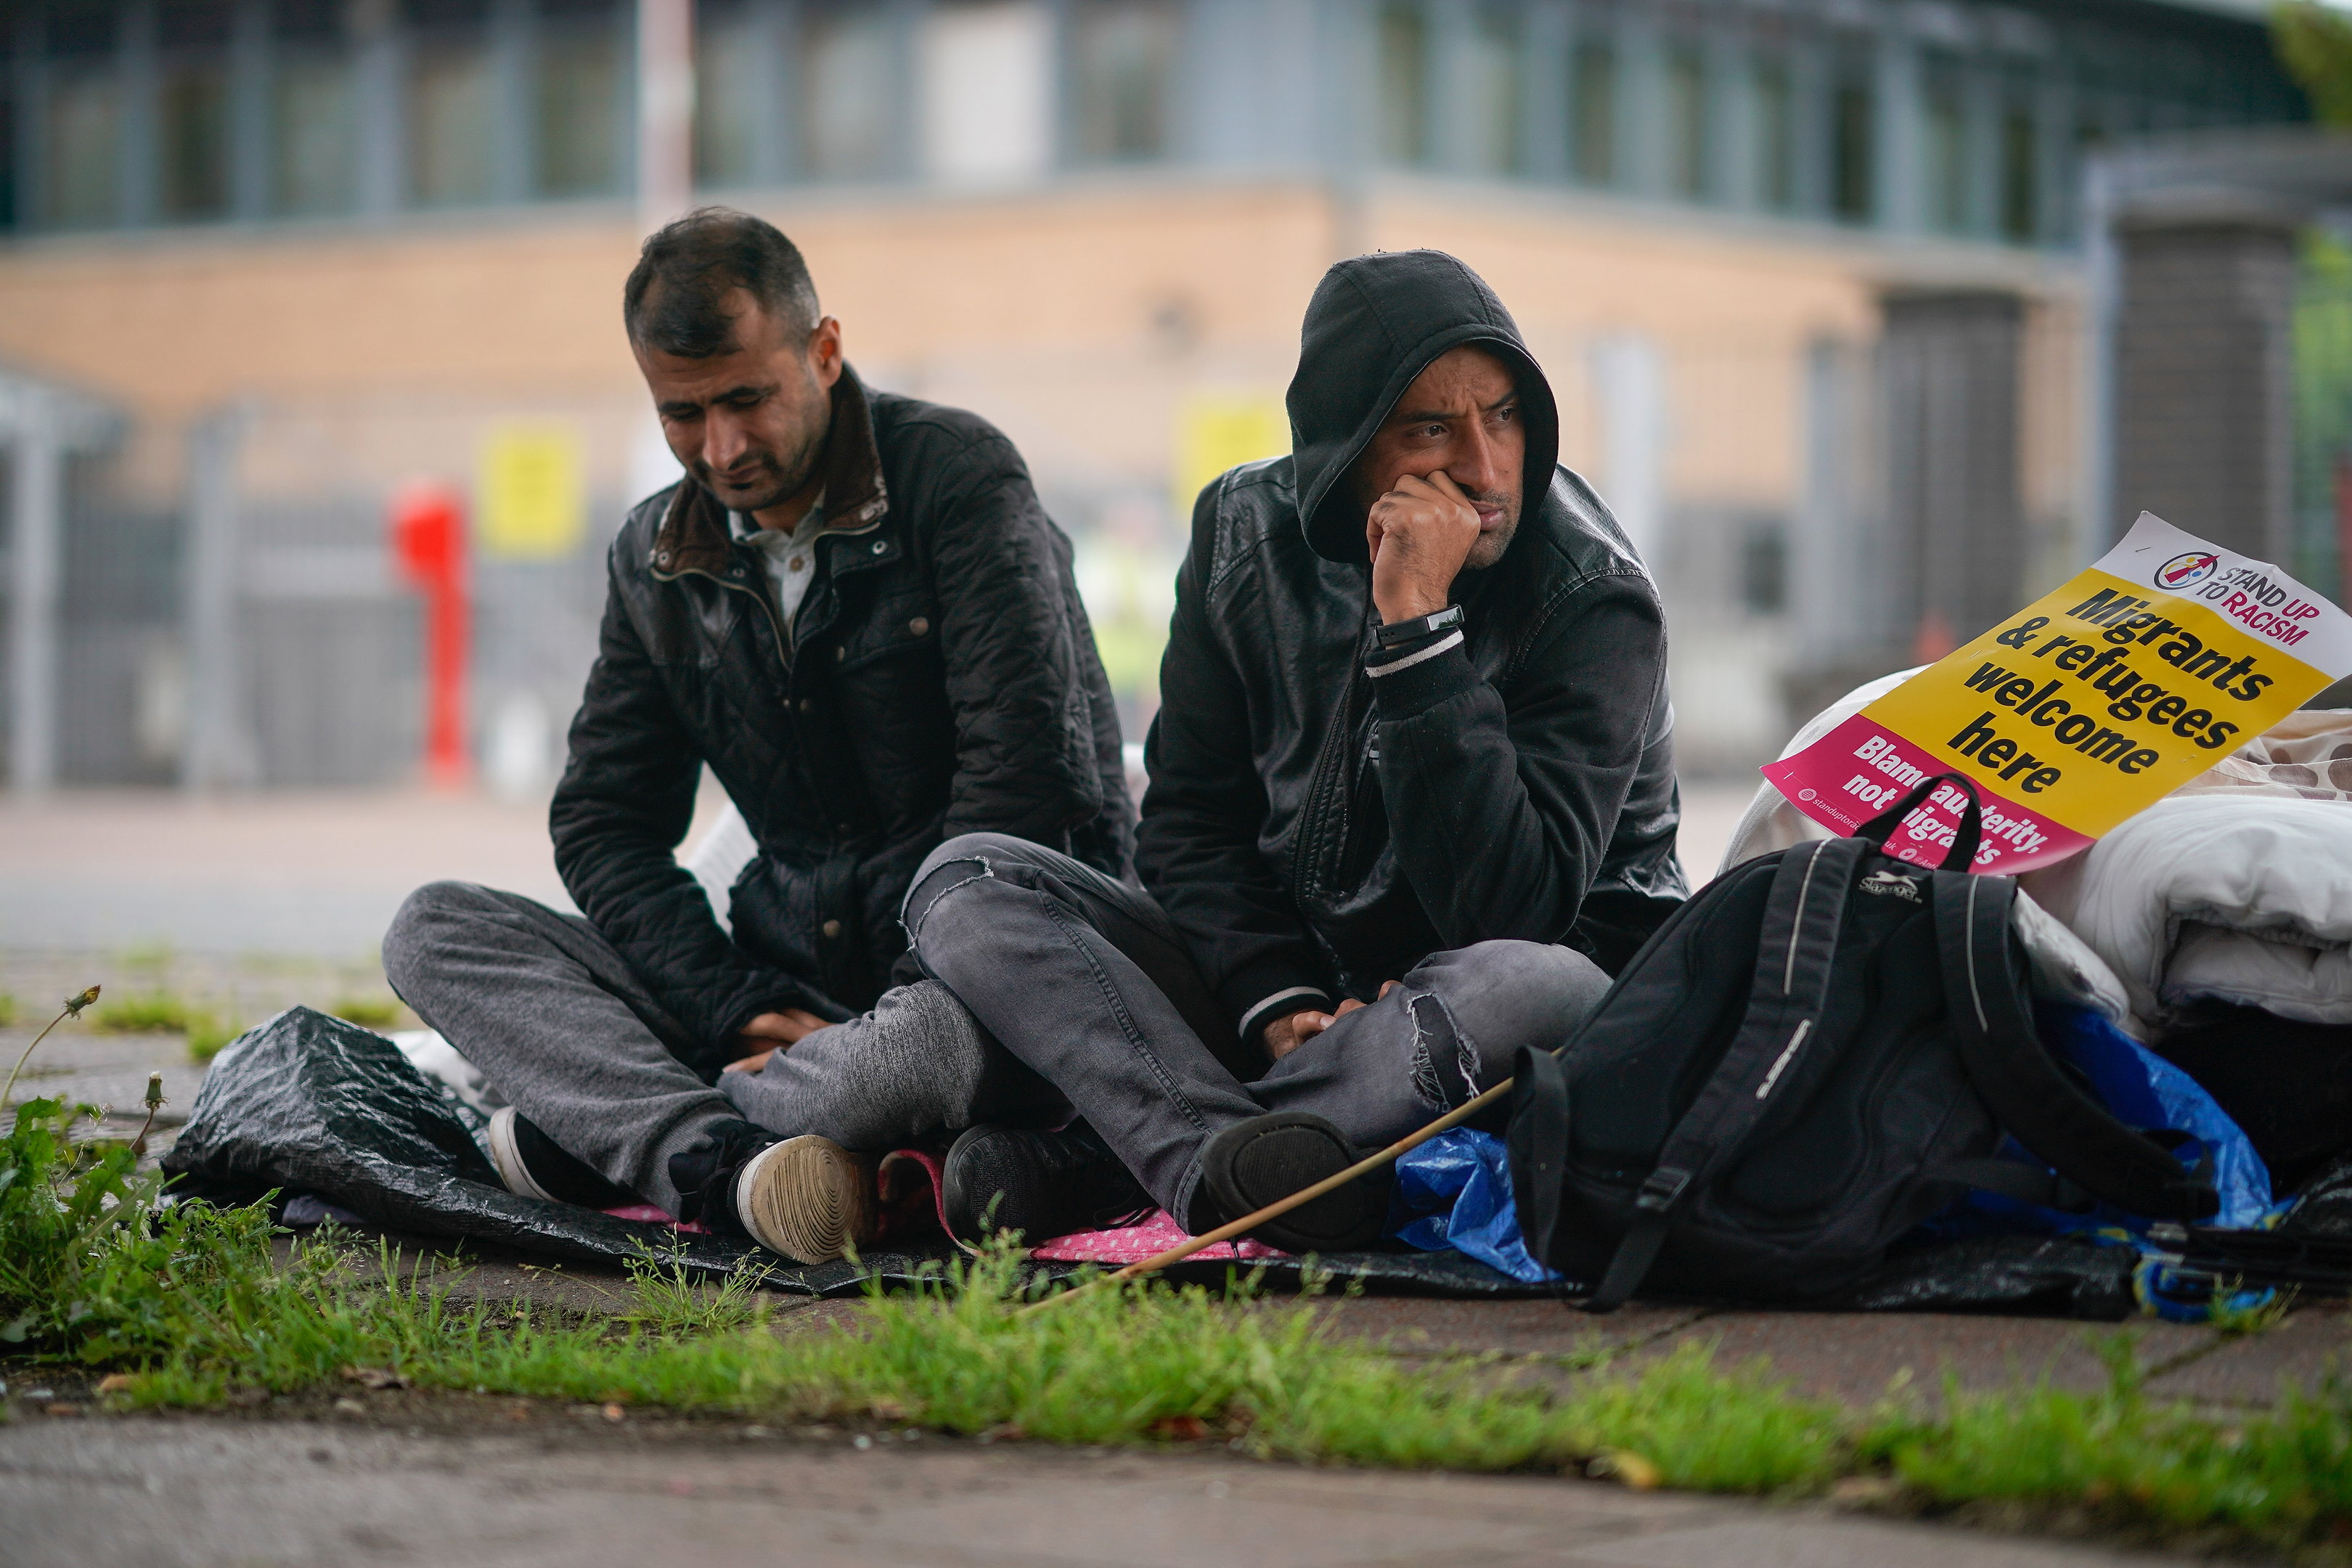 Afghan refugee Rahman Sahah (R) aged 32 and Mirwais Ahmadzai, 27, start their hunger strike outside the H.M. Government Home Office on August 1, 2018 in Glasgow, Scotland. Both men have requested asylum in the UK which has been refused. The two men are tenants of social housing provider Serco and face possible eviction.